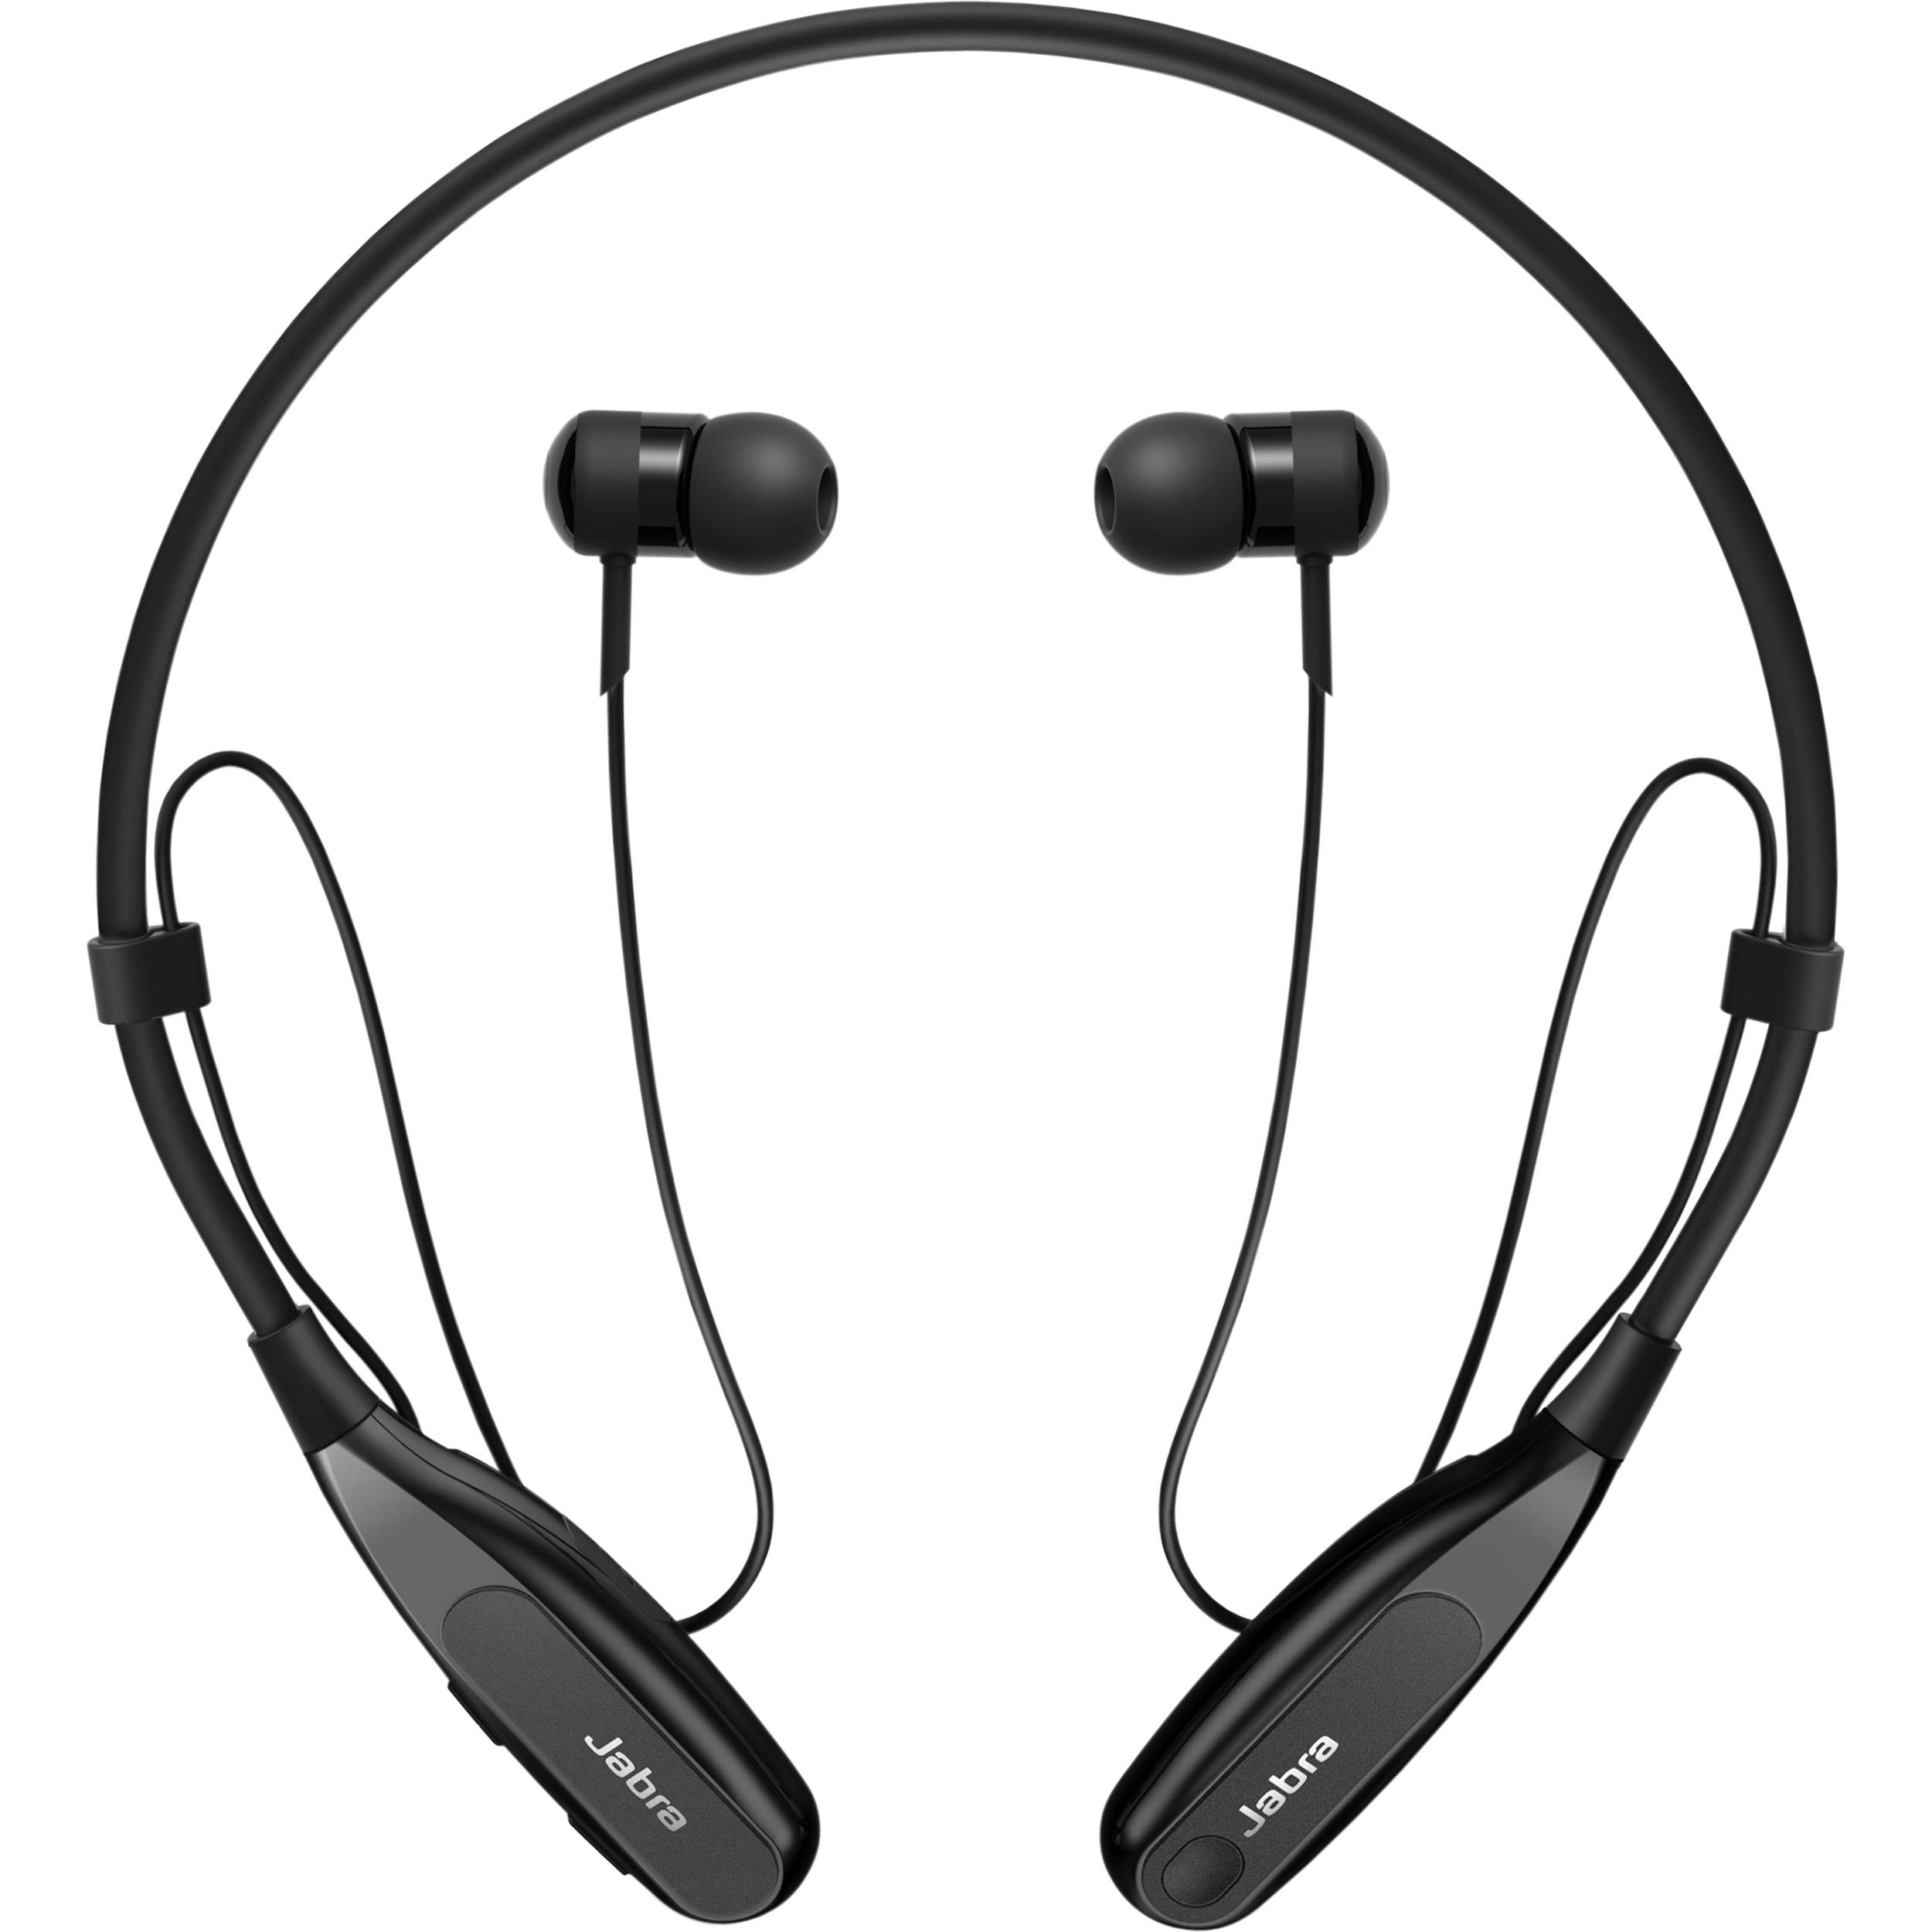 Image for Jabra Halo Fusion Wireless Bluetooth Headphones, Black from Circuit City